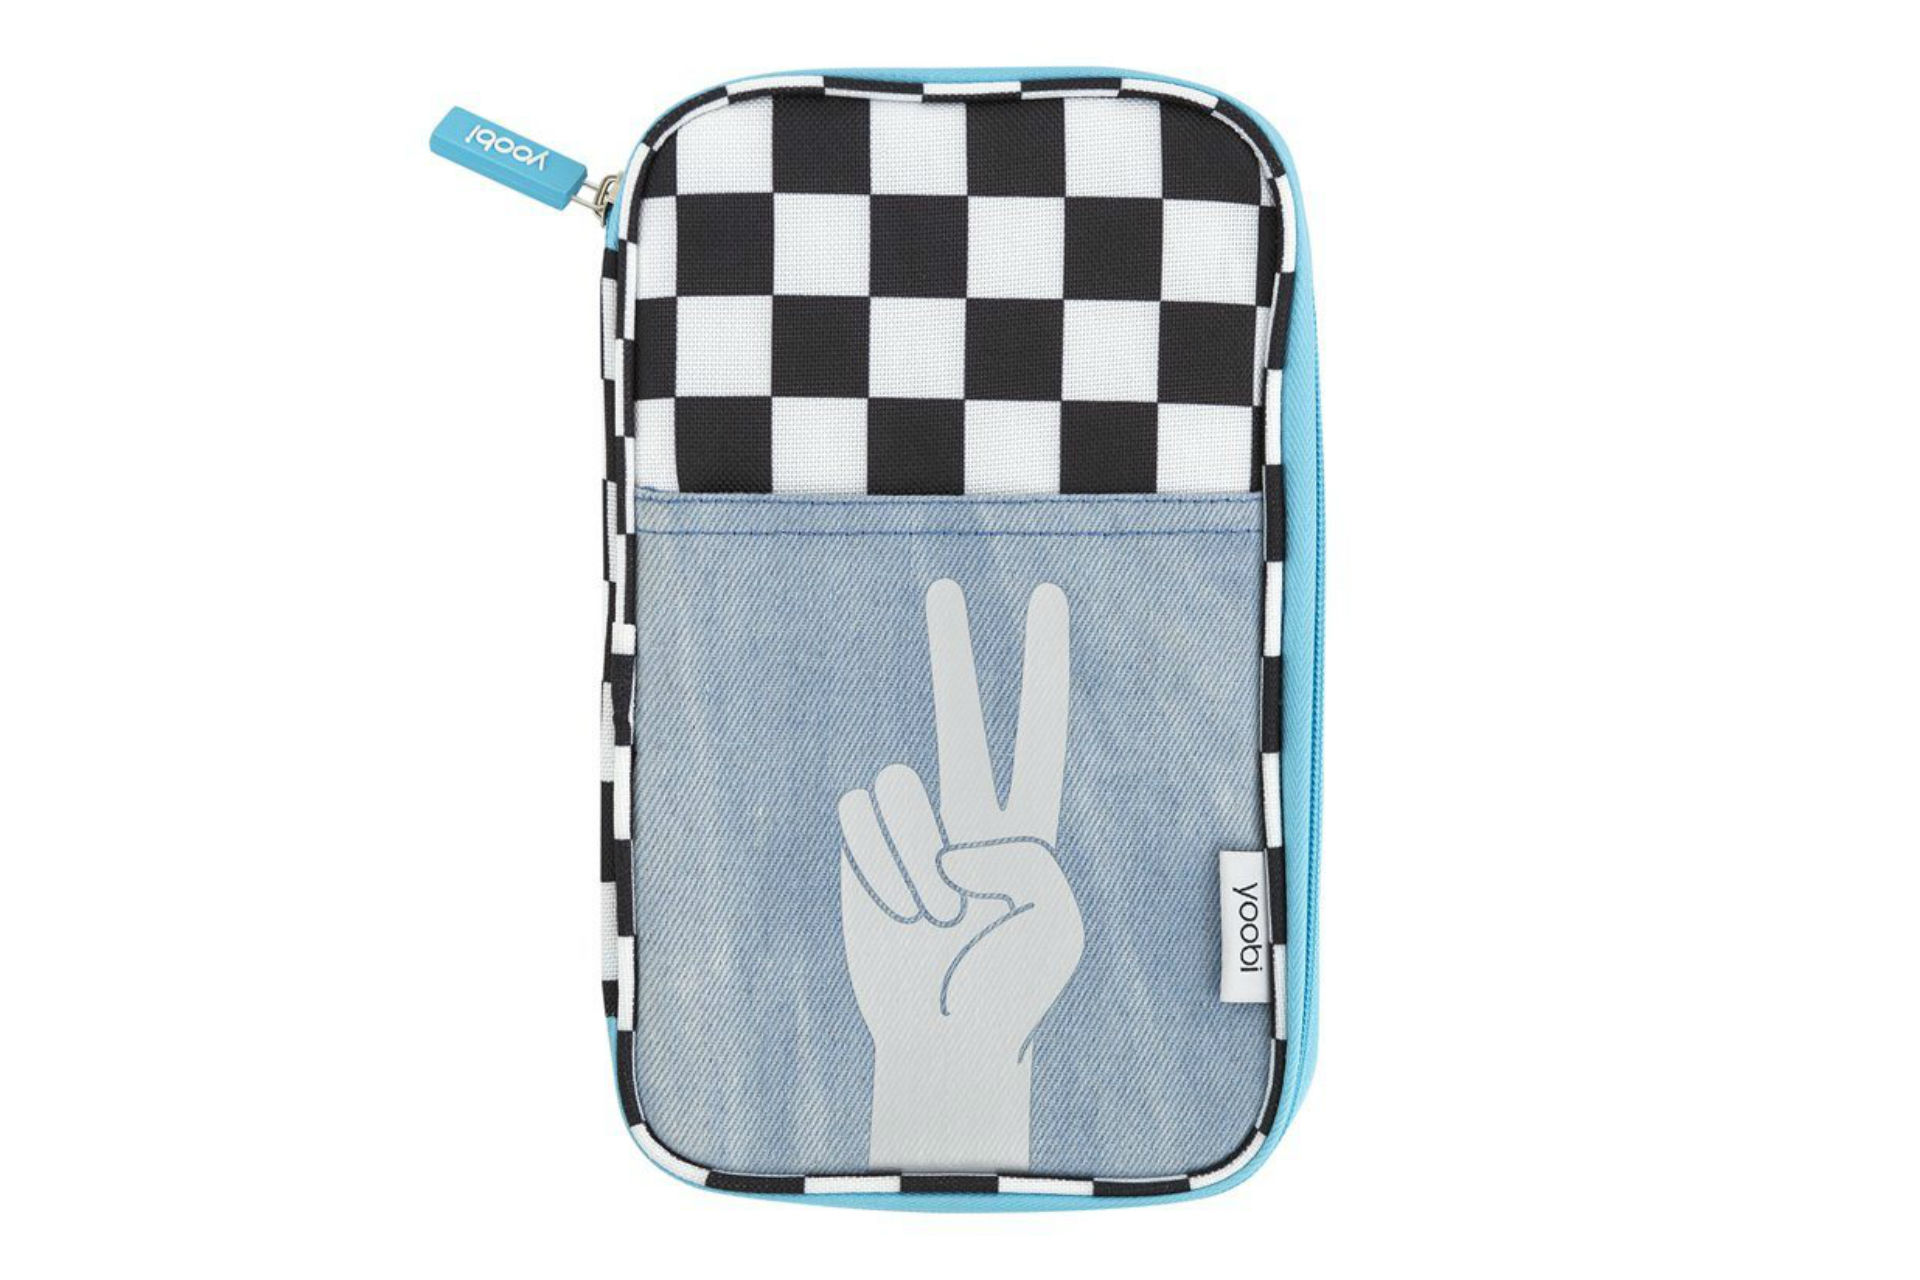 pencil case with a hand giving the peace sign